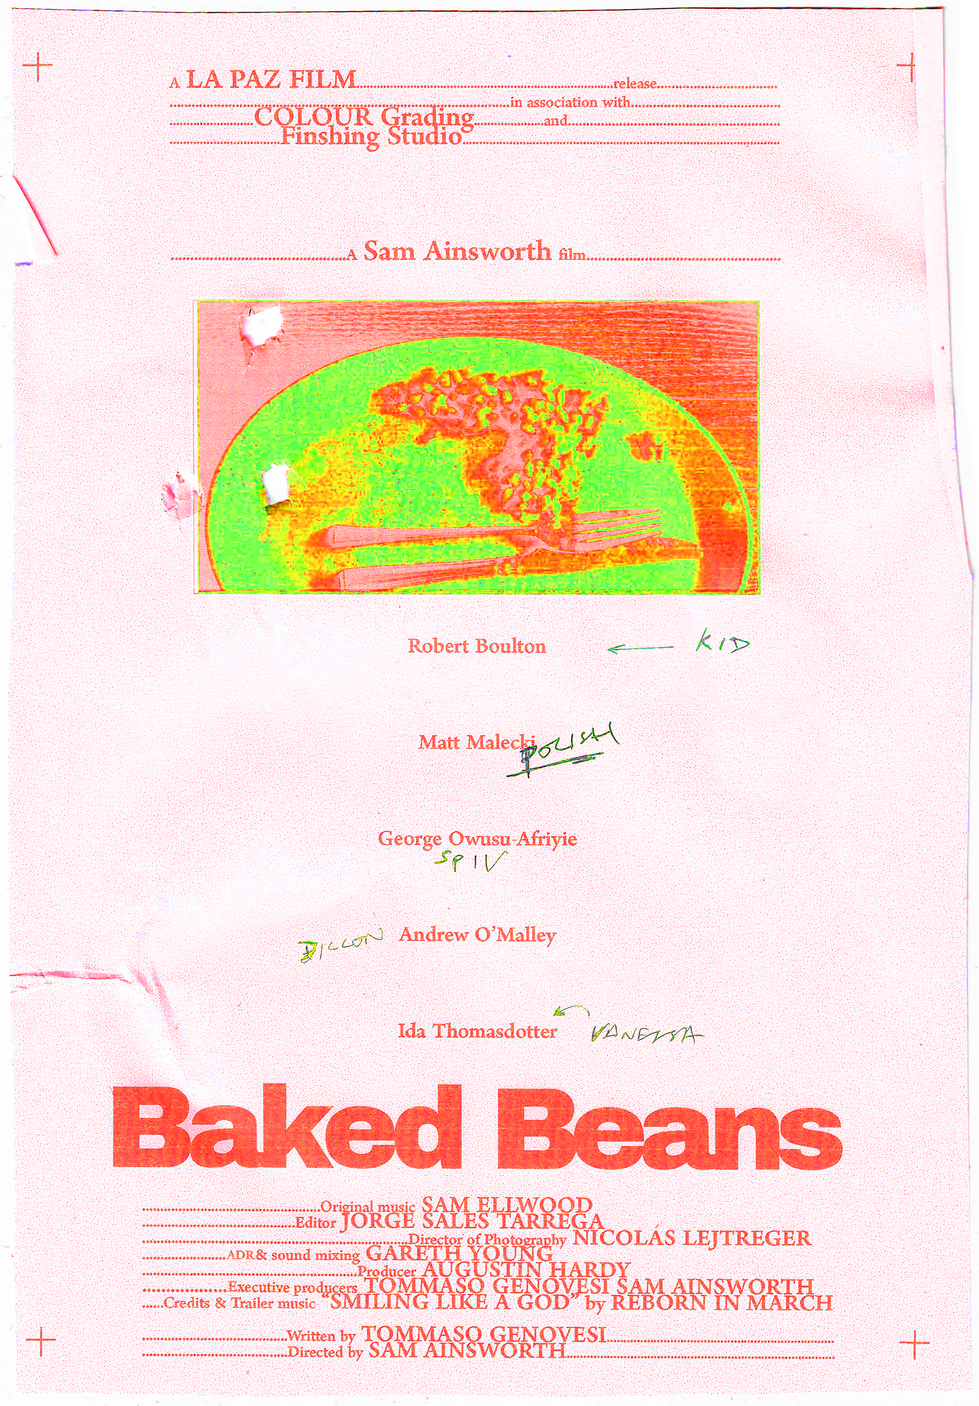 Baked_Beans_Final_Poster_NEWCROP.png